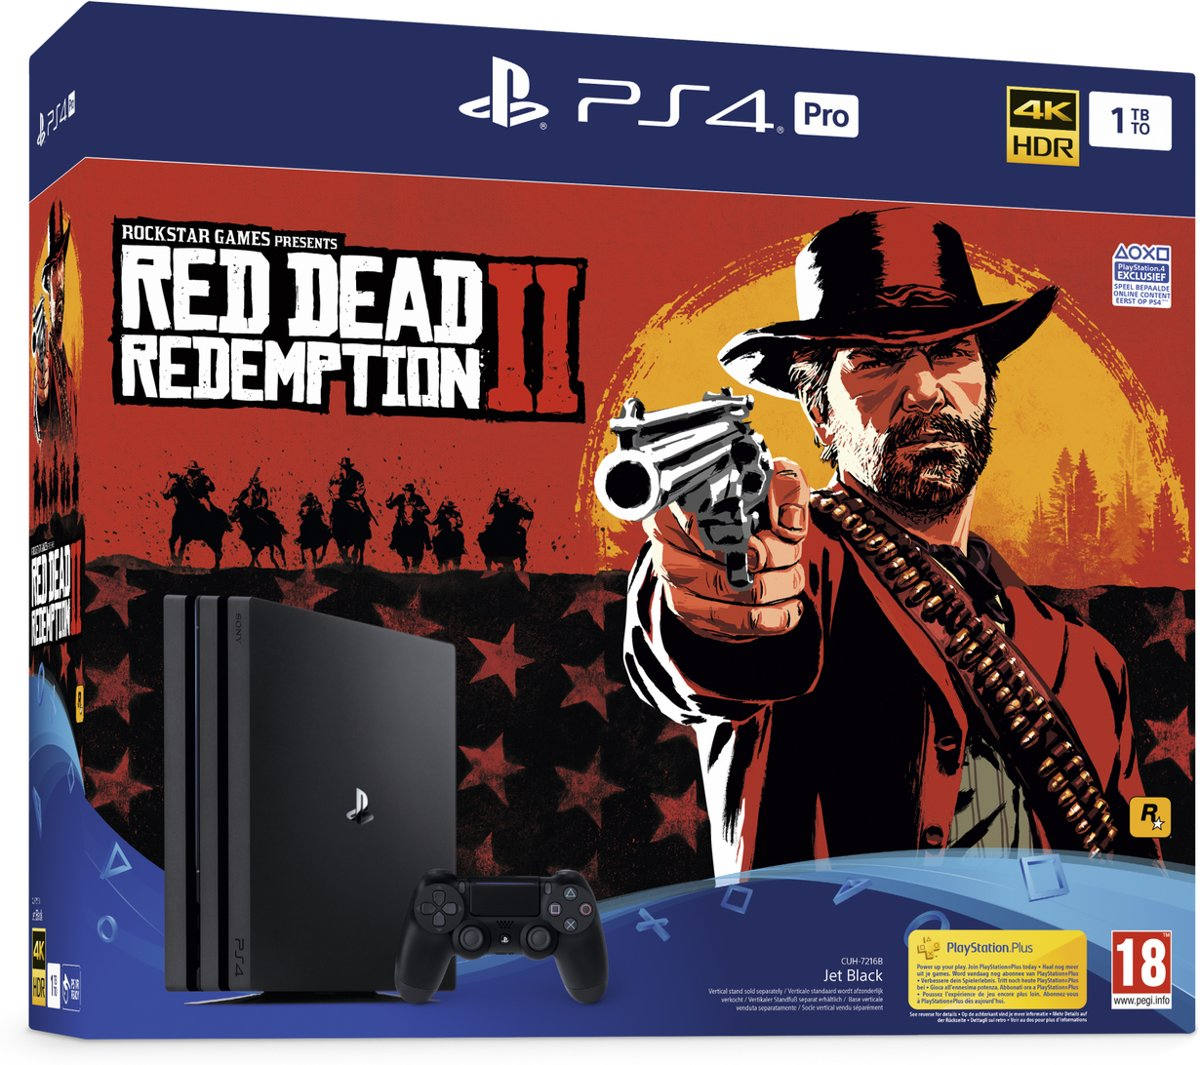 PS4 PRO 1TB + Red Dead Redemption 2